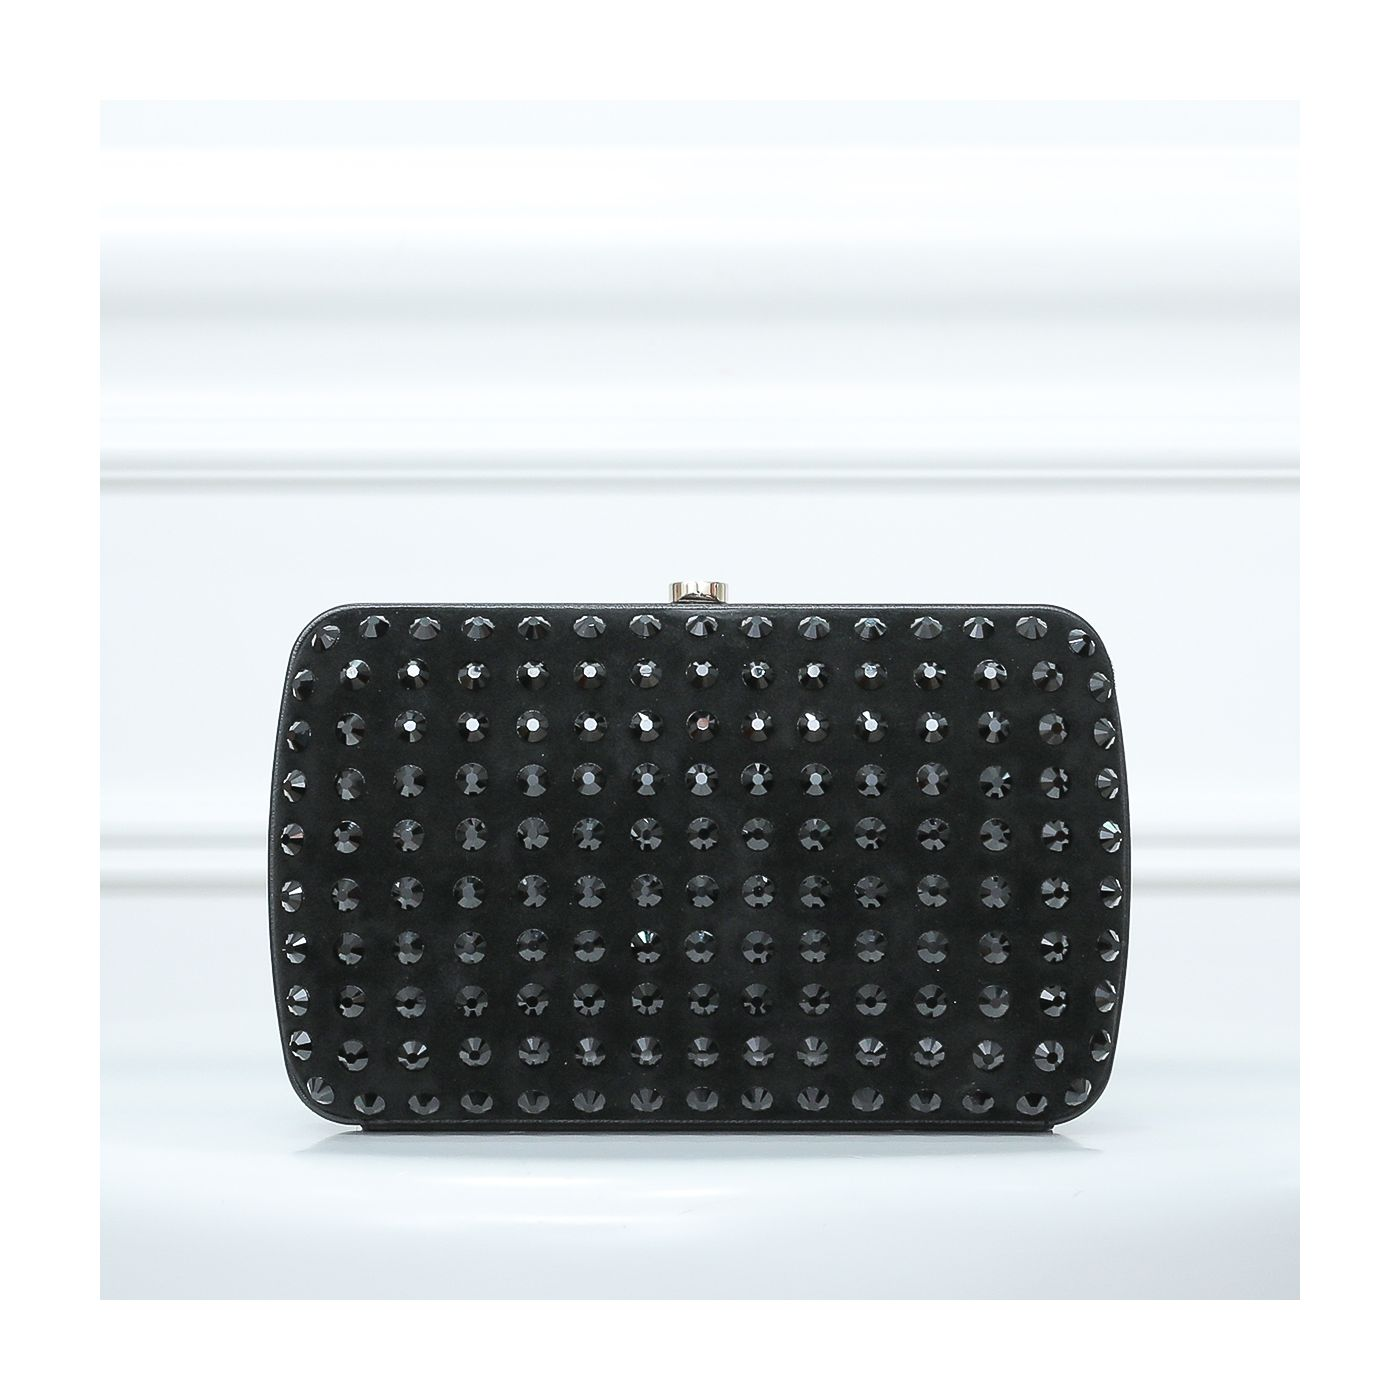 Gucci Black Soiree Studded Suede Clutch